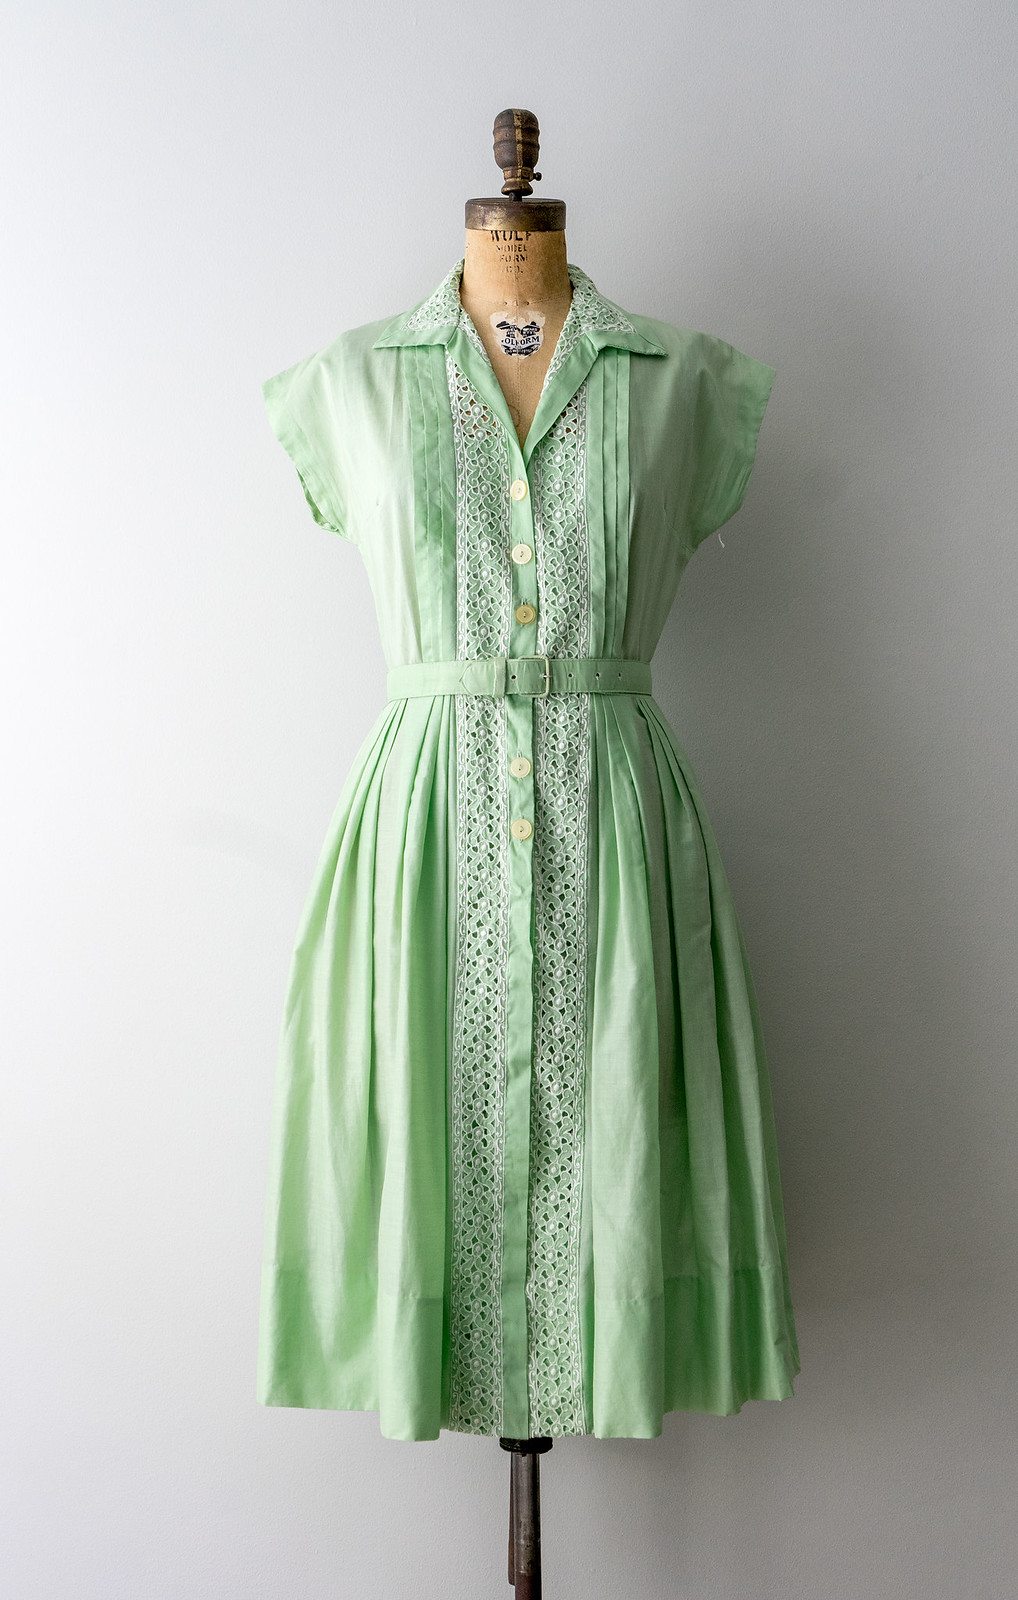 mint green cotton embroidered shirtwaist dress